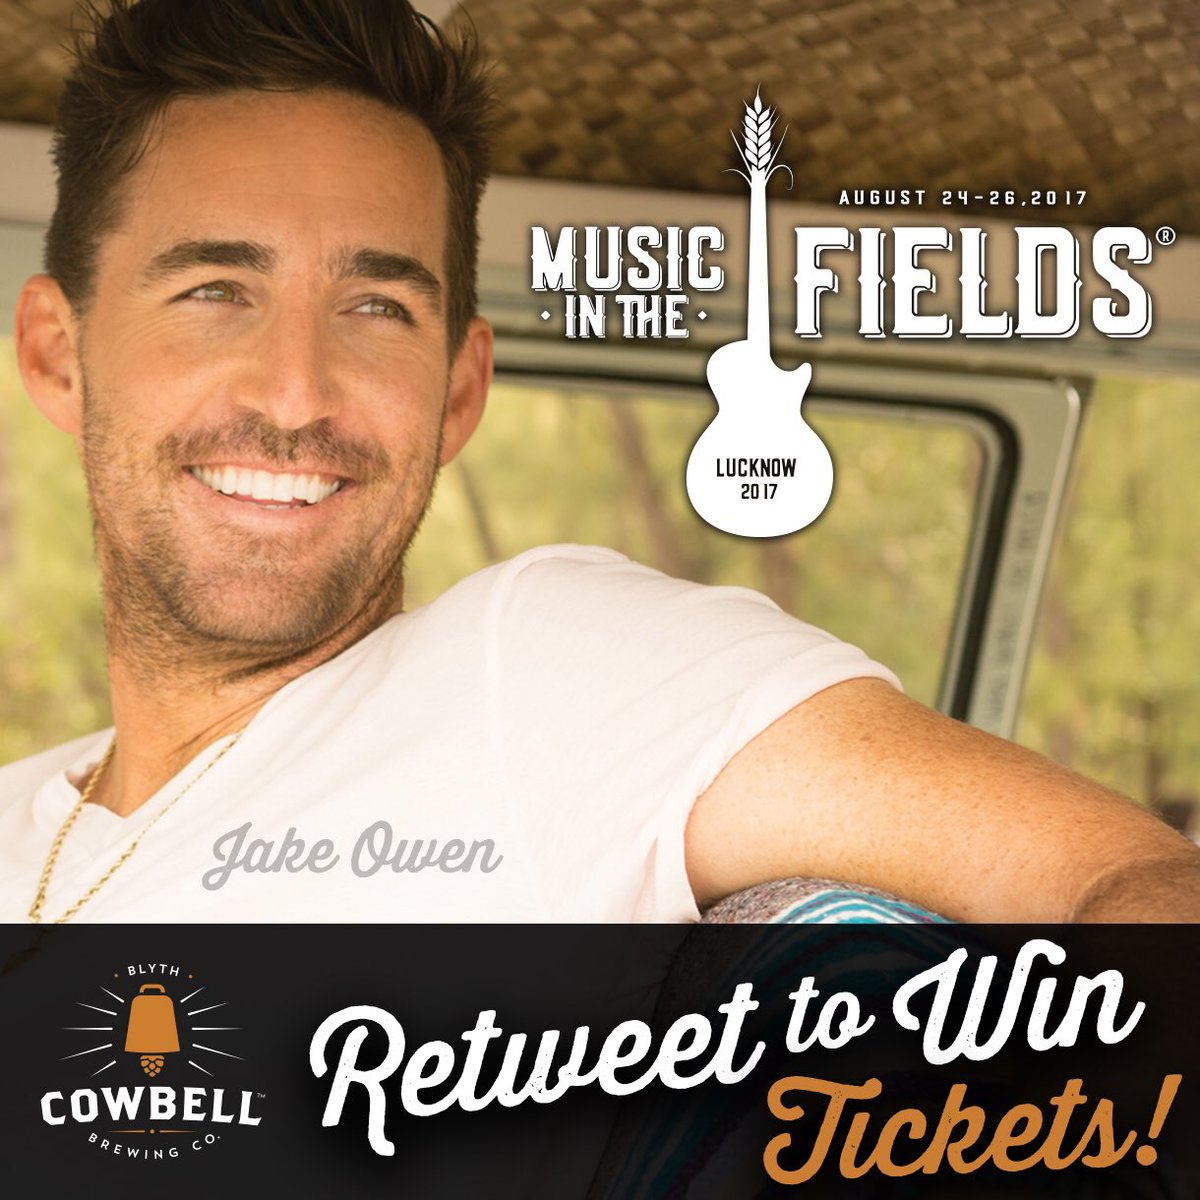 RETWEET for a chance to #win #free #tickets @LucknowsMITF  http://www. musicinthefields.ca  &nbsp;    #seeyouthere #CountryMusic @jakeowen #cantwait<br>http://pic.twitter.com/PRYrKYlNbz